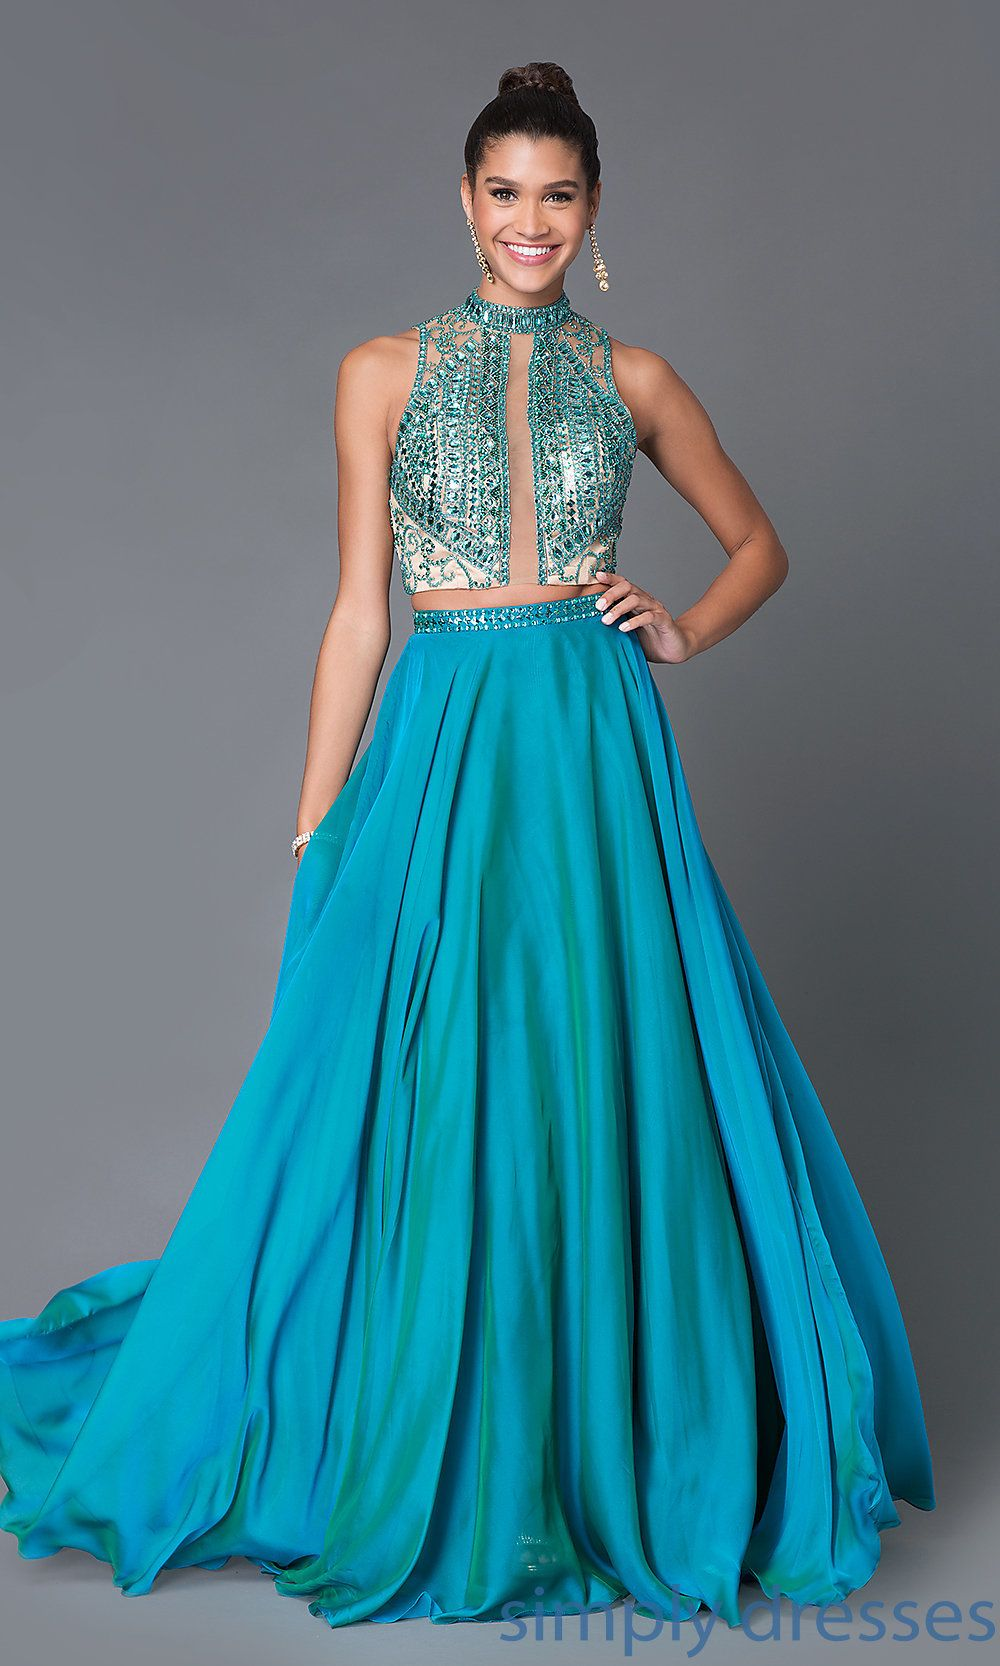 MF-E1939 - Long Teal Two Piece Dress With Beaded Bodice | Dress ...